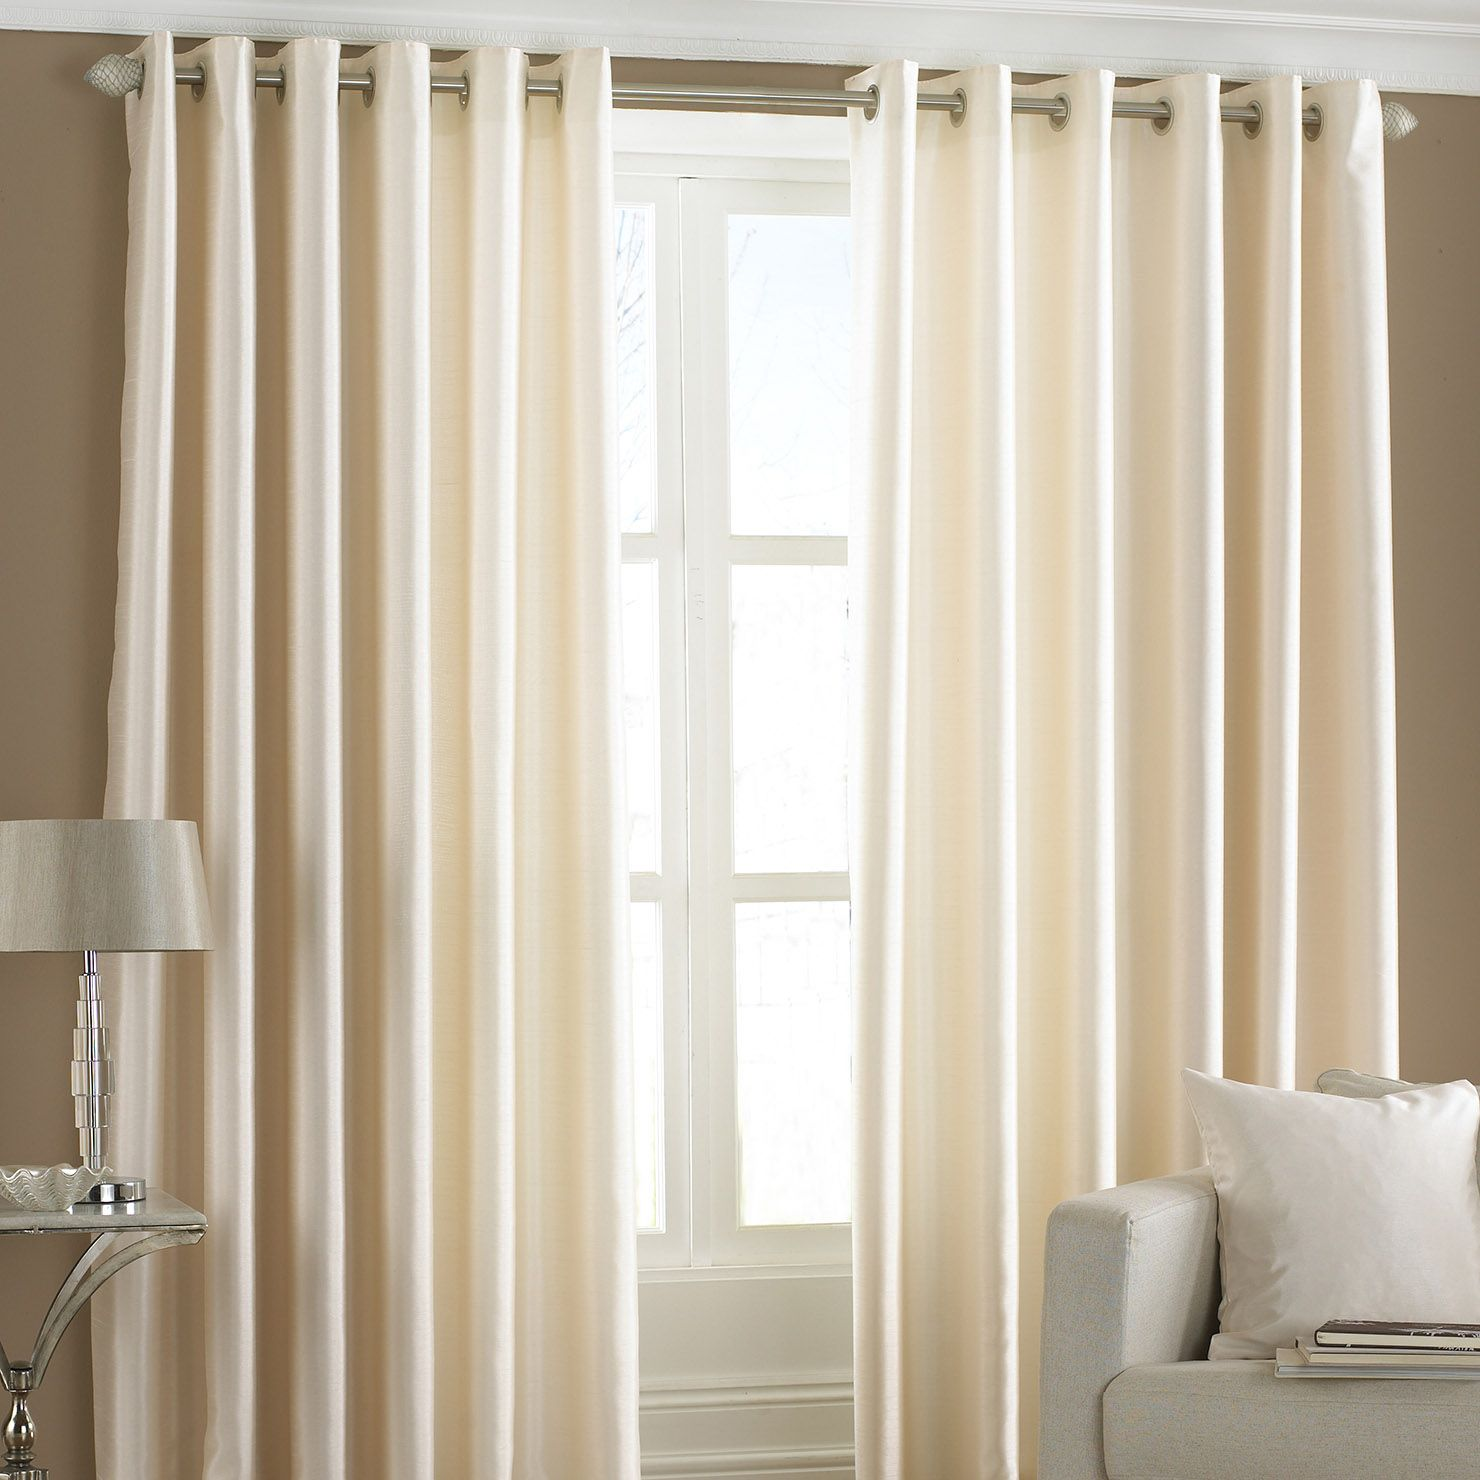 intended curtain at proportions home for curtains shower x goods suppliers rod manufacturers and